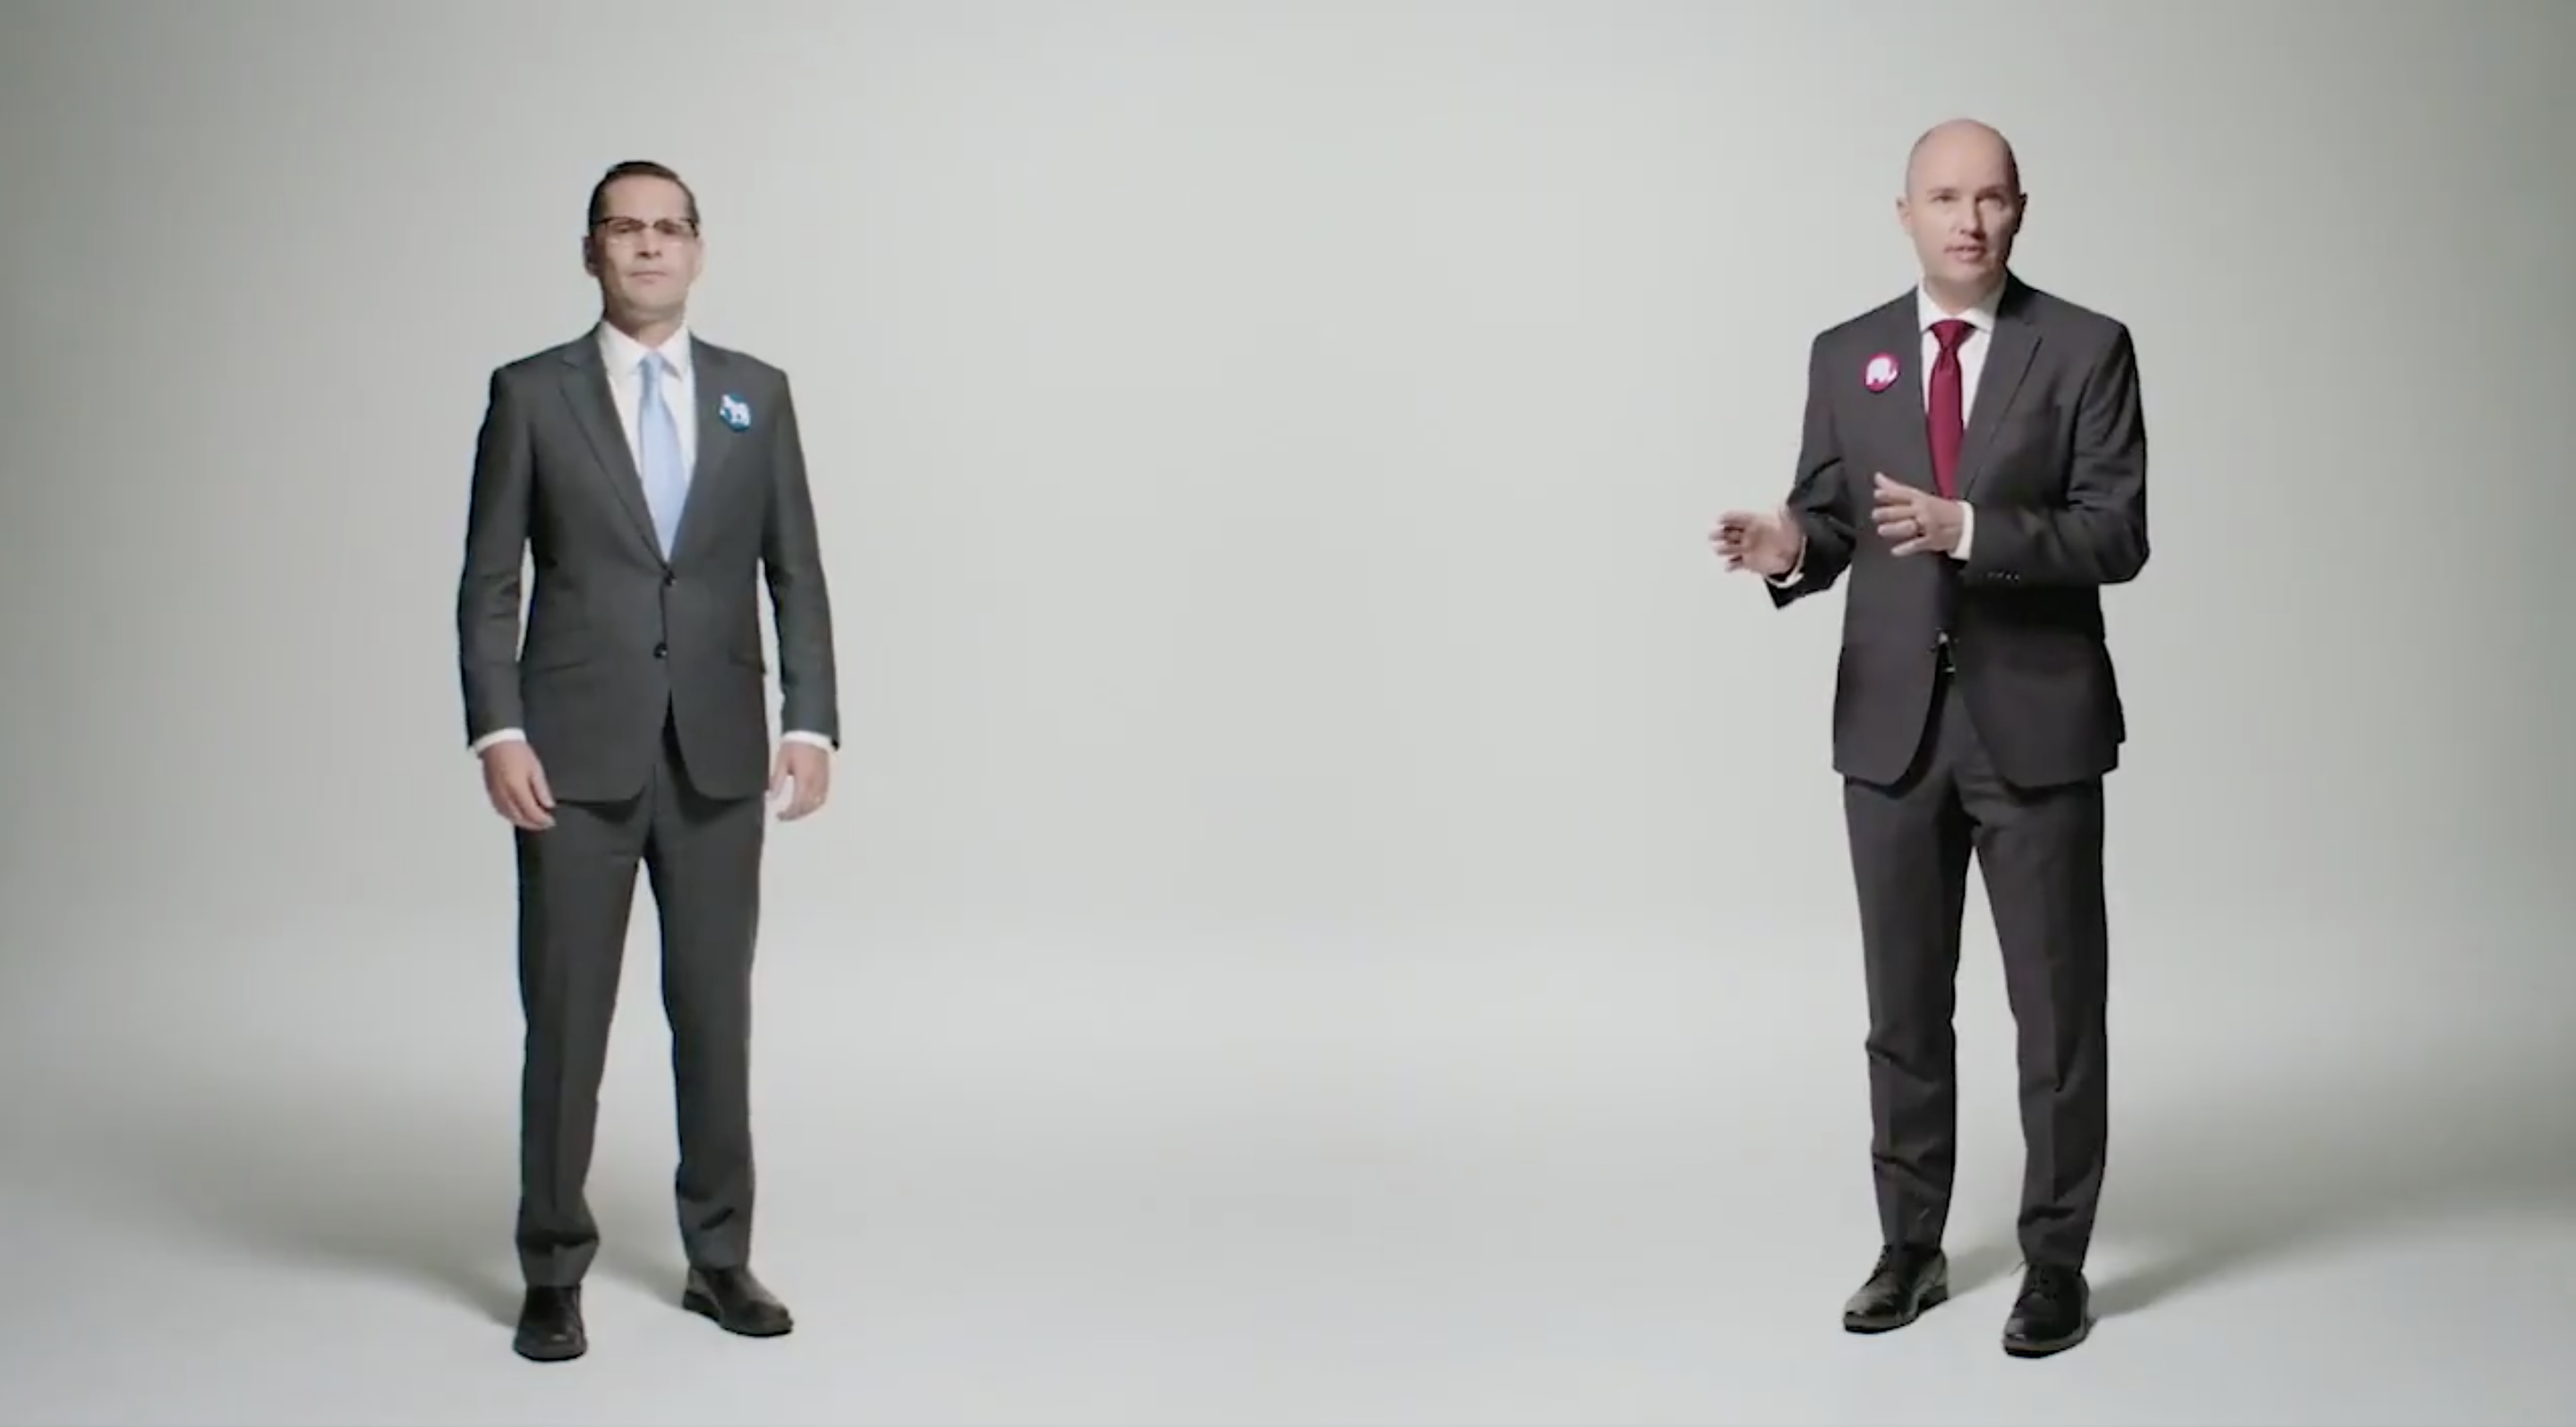 Utah Governor Candidates Release Joint Advertisement